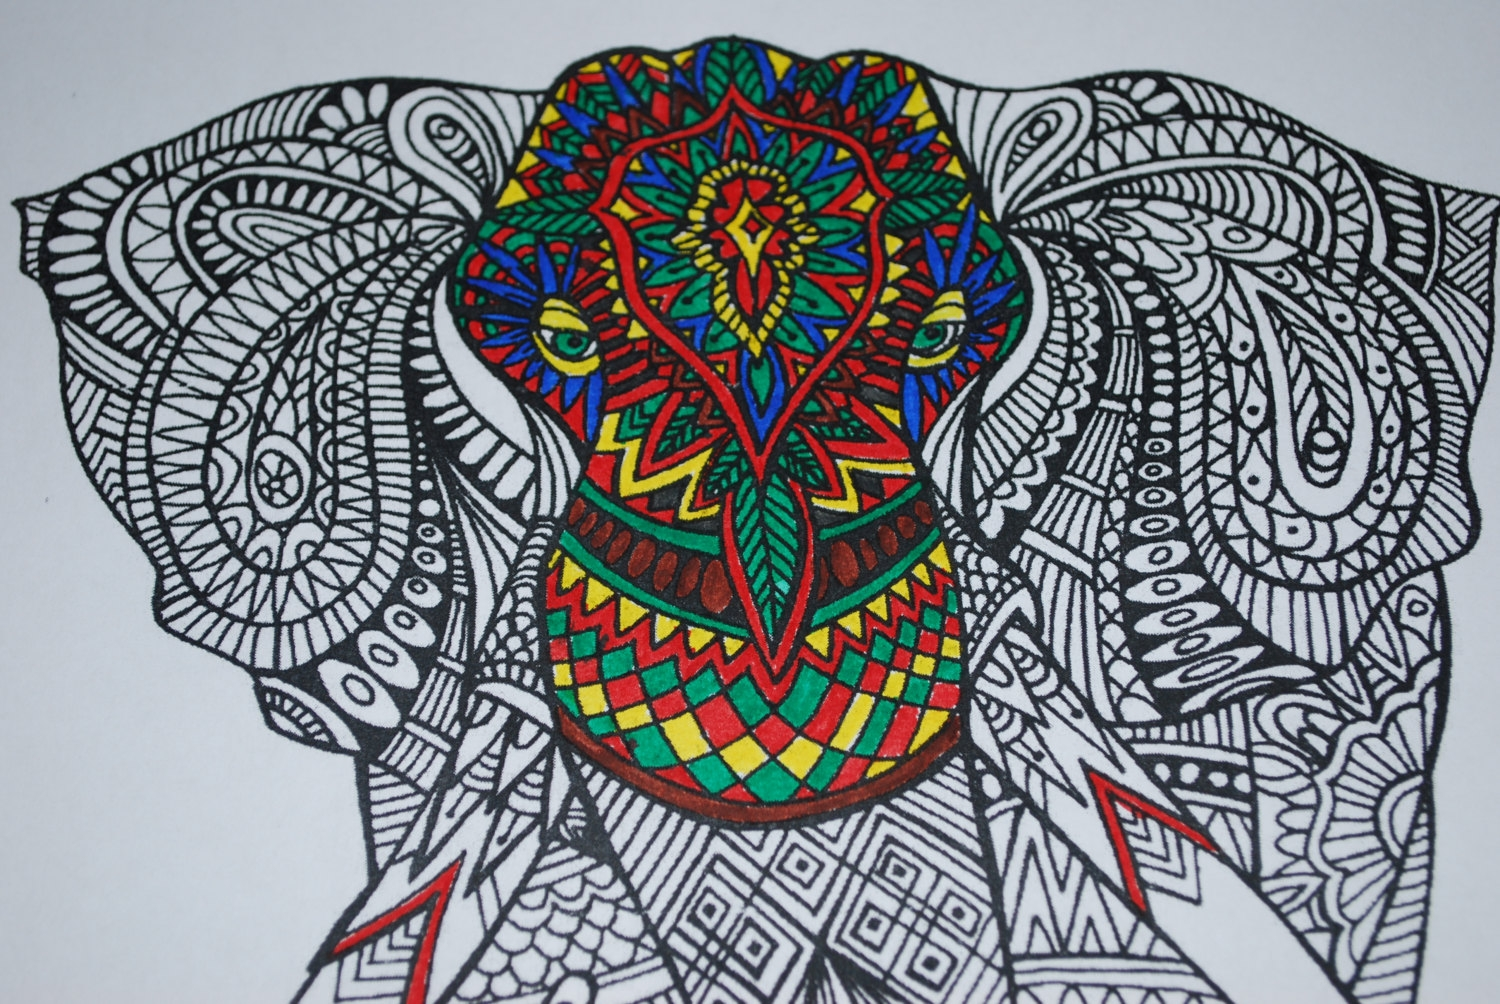 elephant mandala coloring pages - coloring page printable soloring animals